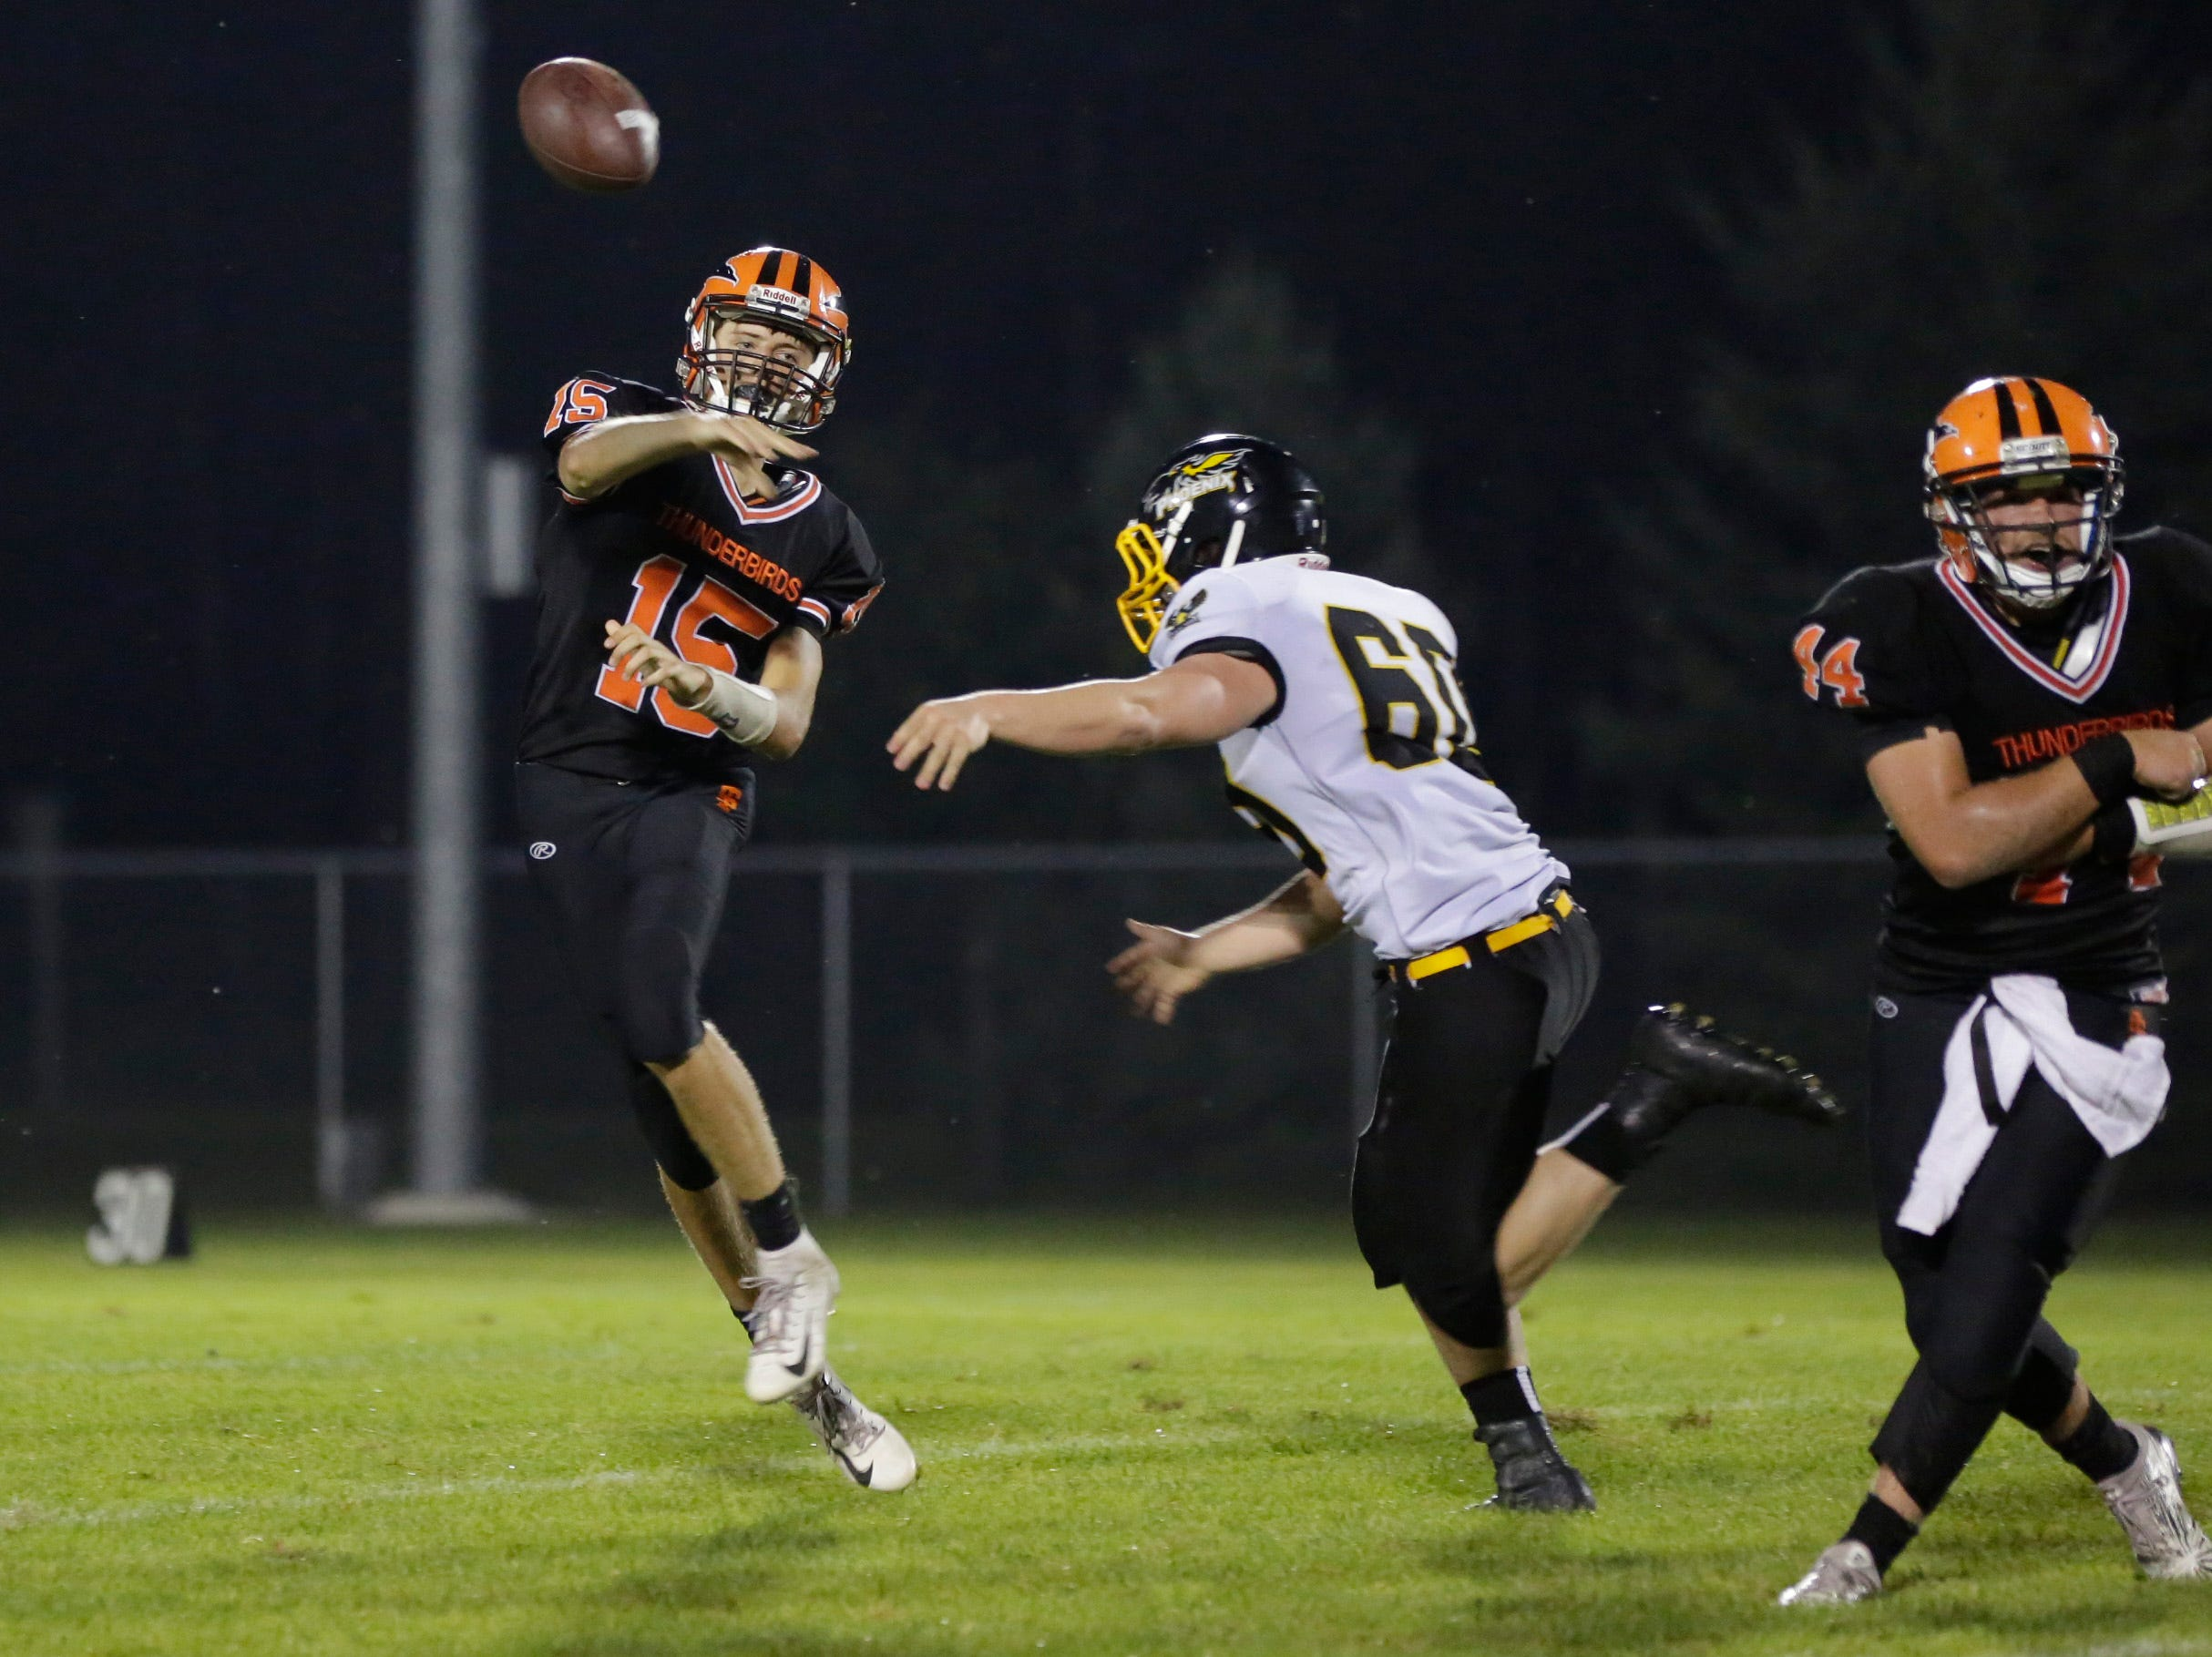 Iola's Connor Kurki (15) throws the ball during the first football game of the season, between Iola-Scandinavia and Montello/Princeton/Green Lake at Thunderbird Field in Scandinavia Friday, August 17, 2018.